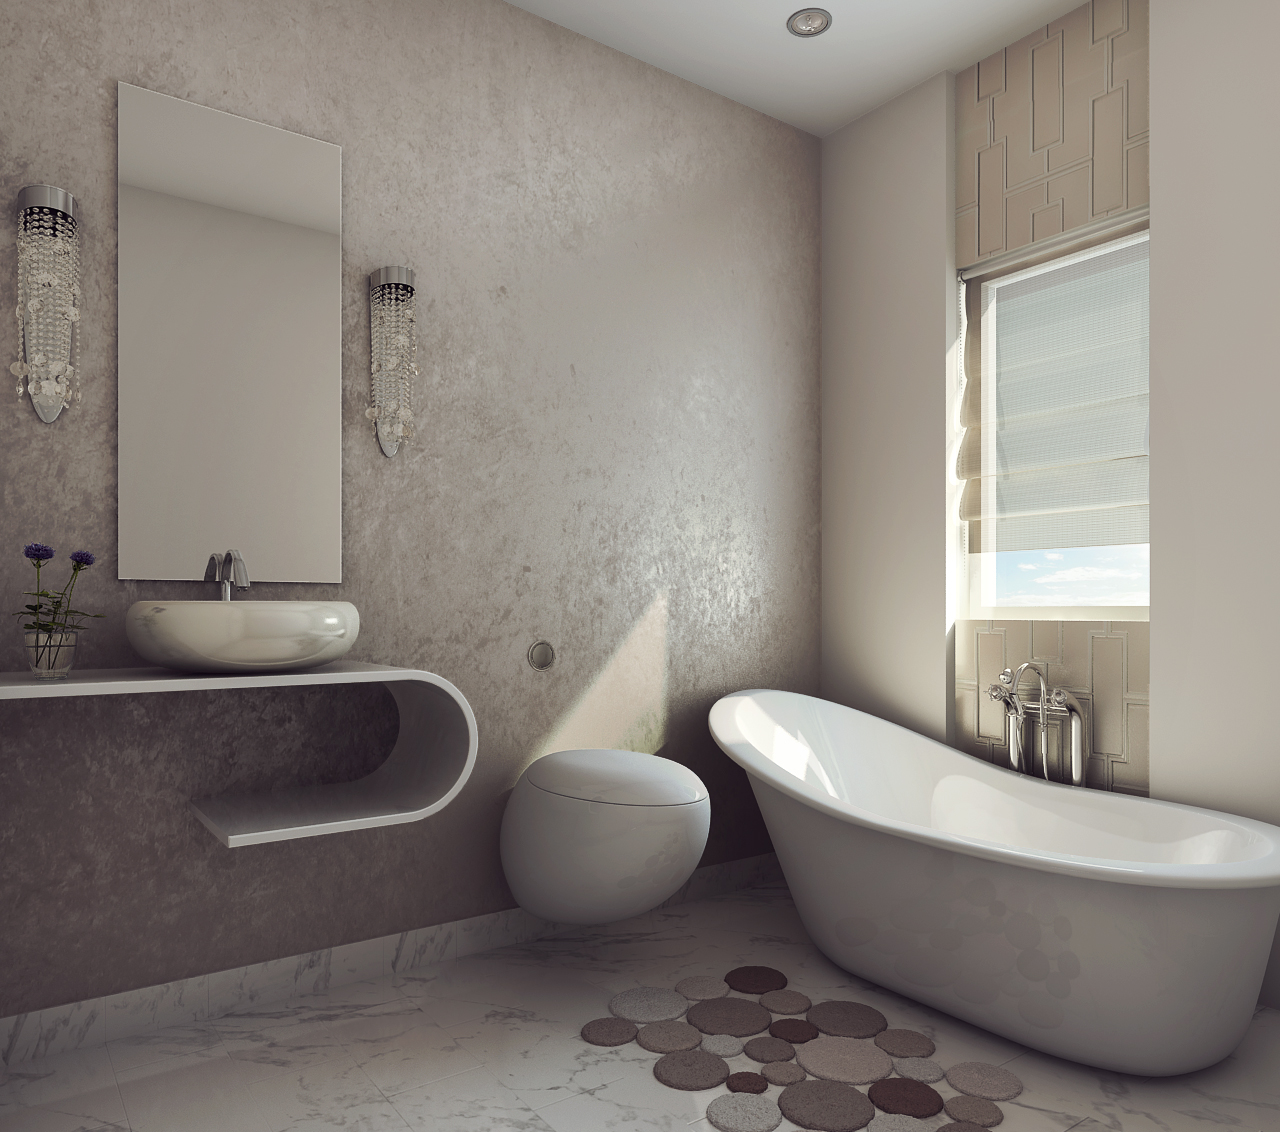 Modern Earthy Design Bath Room Free 3d Model Max